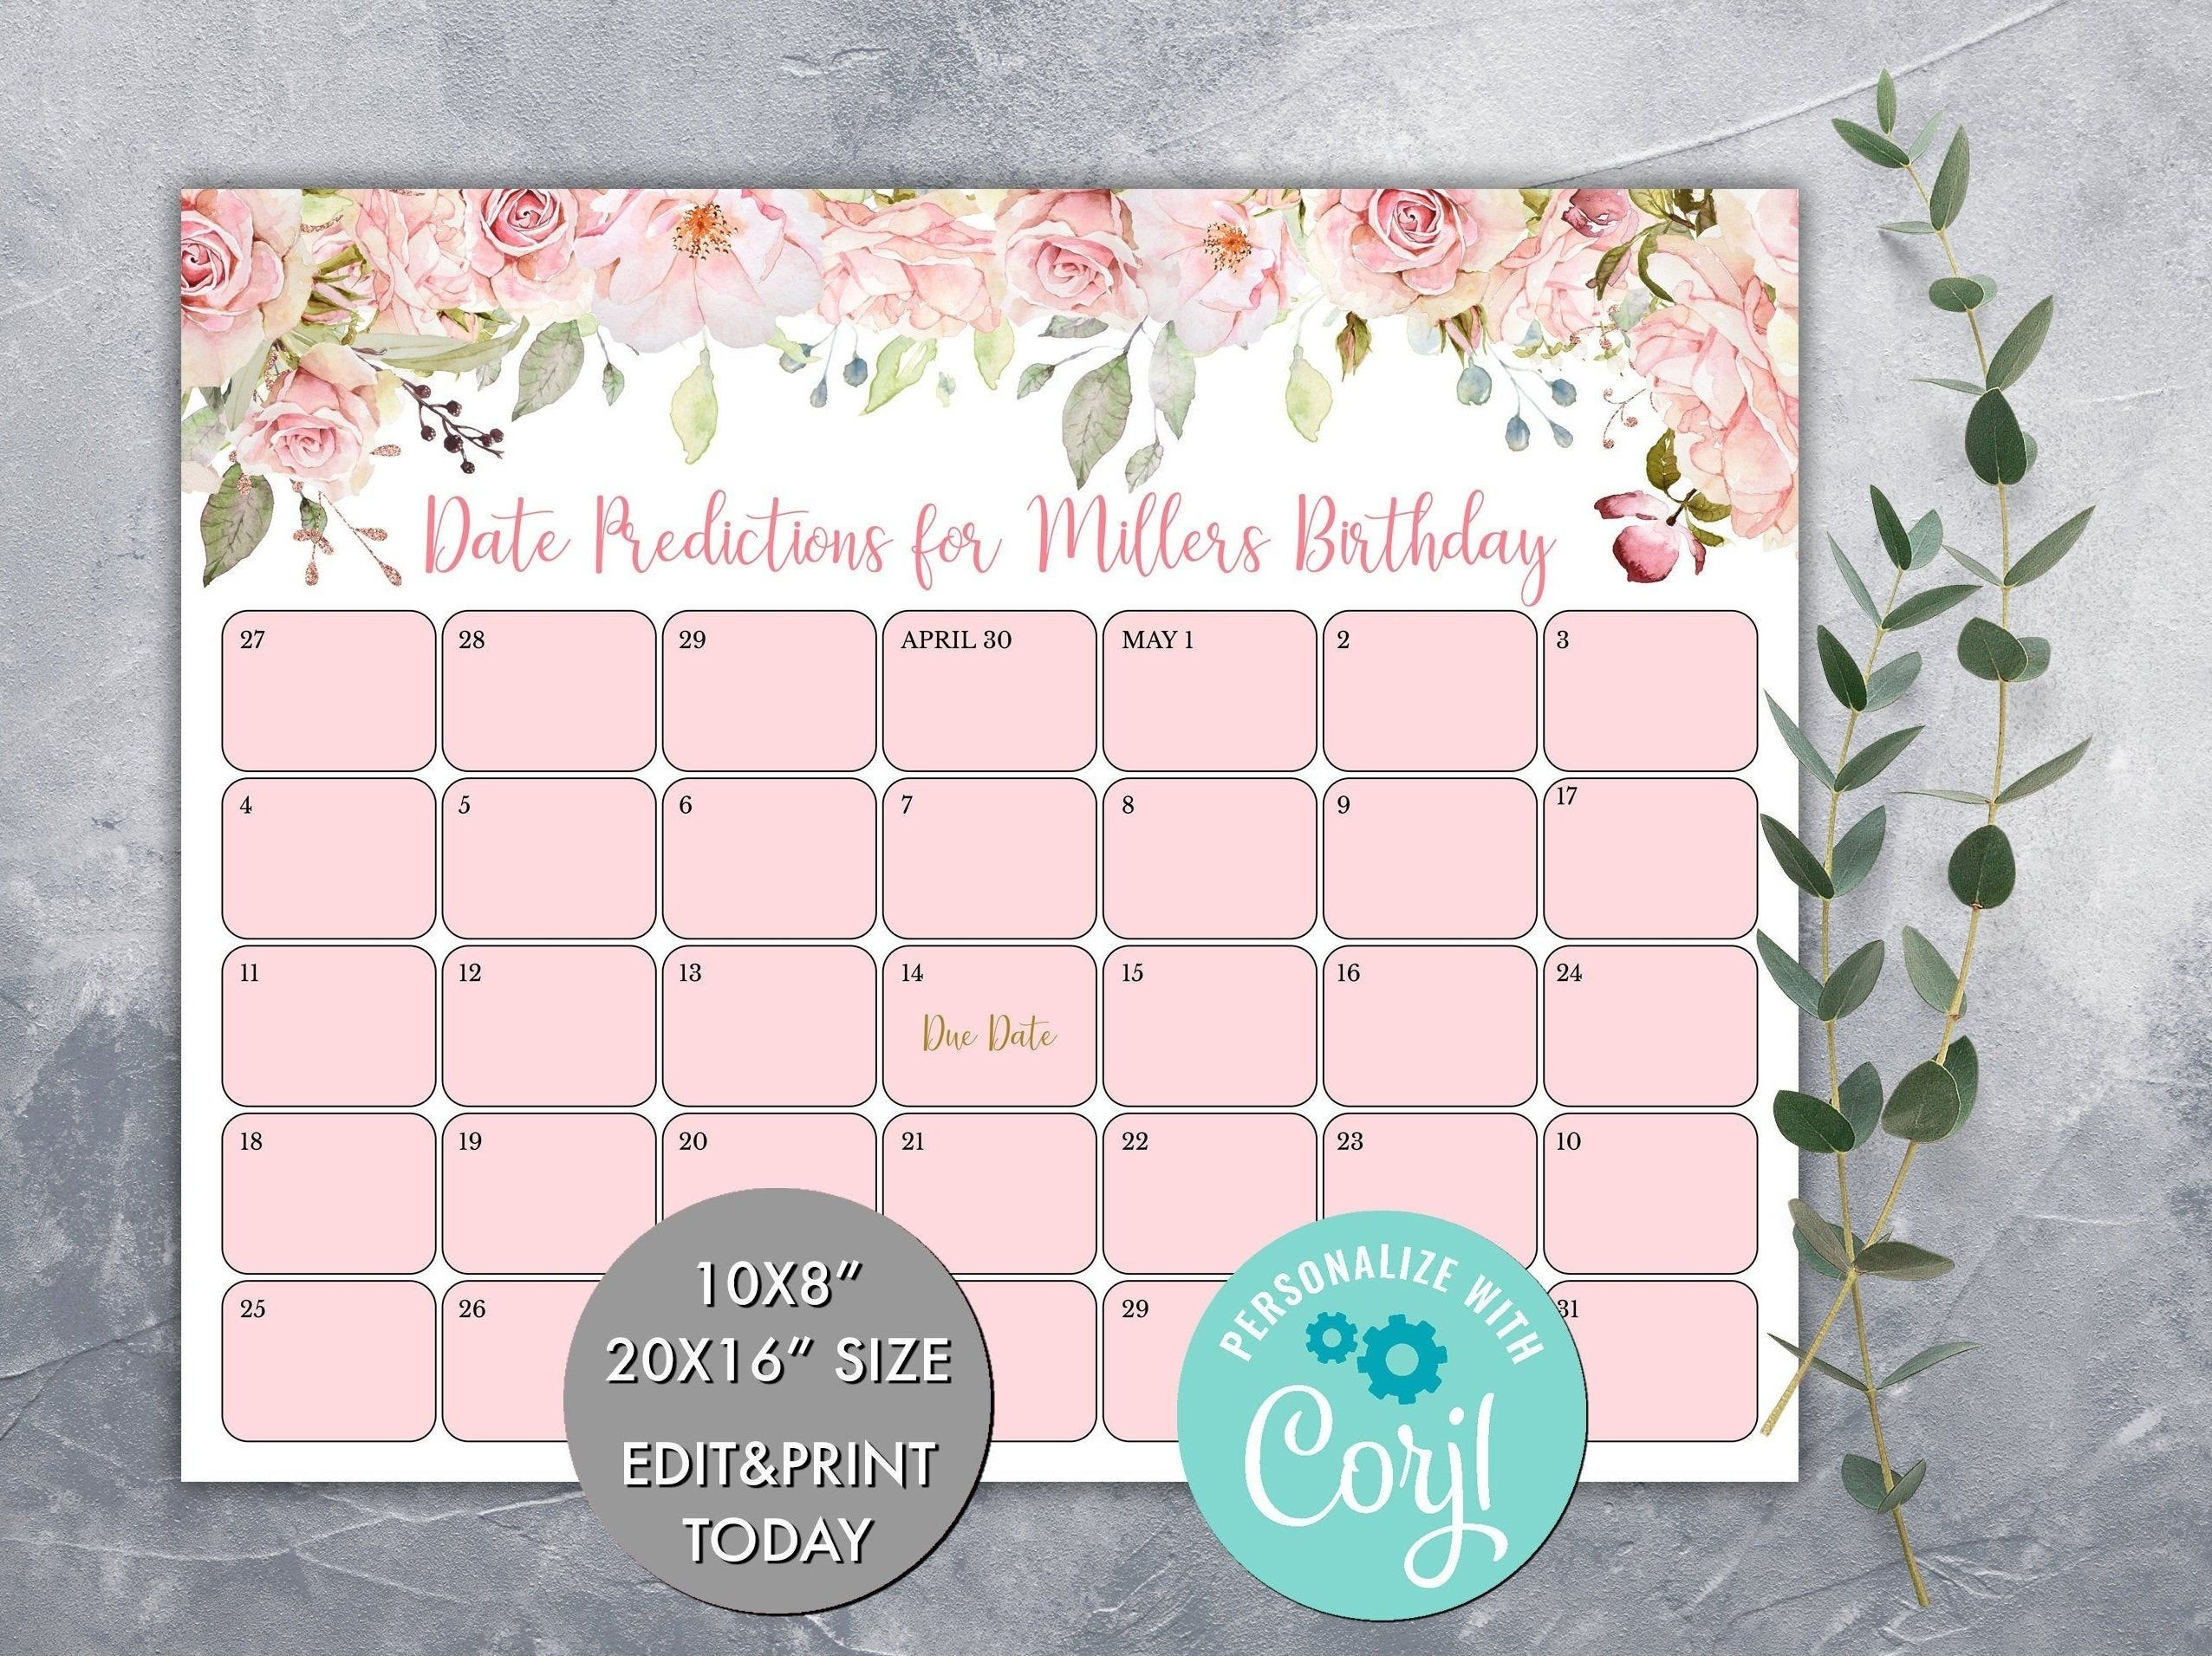 Baby Guess Birthday Free Printable | Calendar Template 2021 Babies Due Date Guess Large Print Out